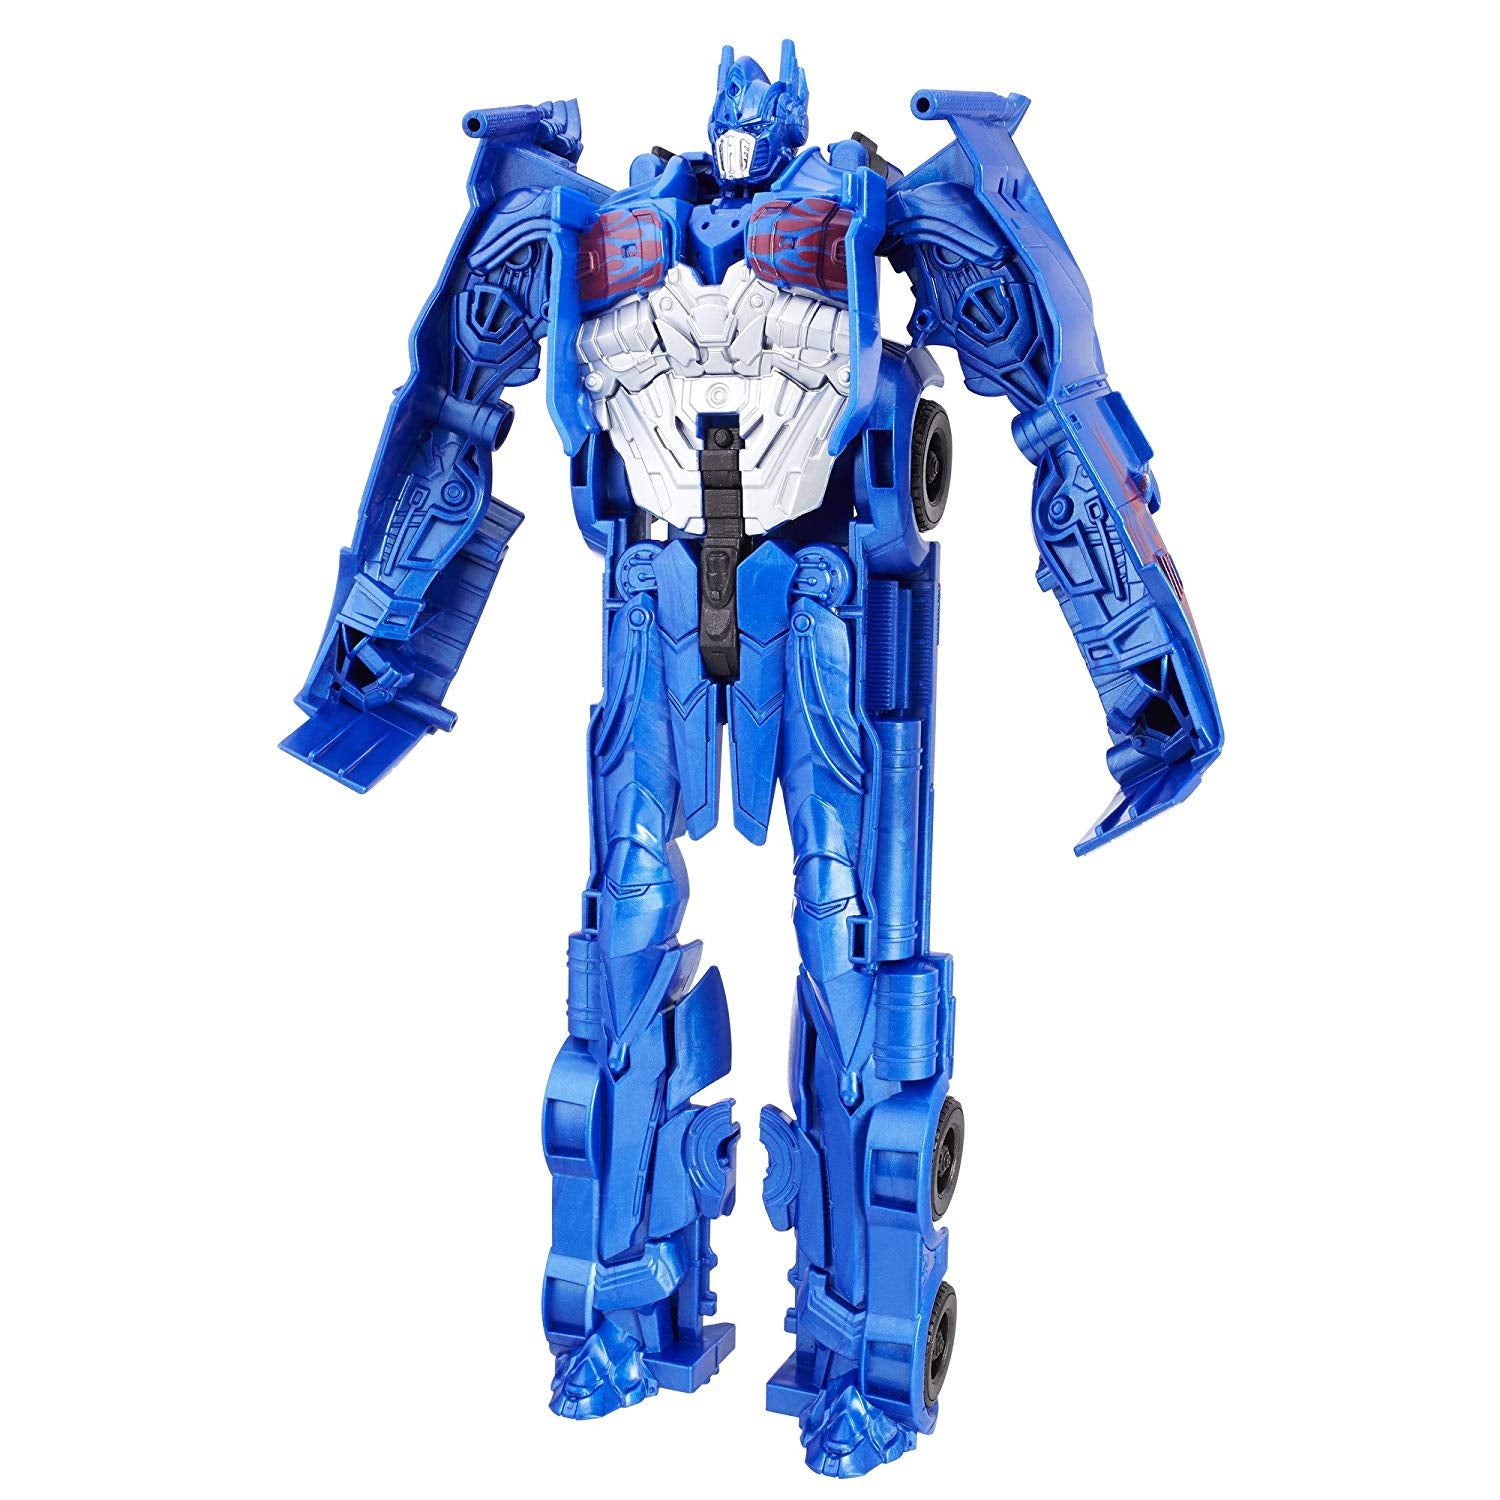 Transformers The Last Knight: Titan Changer Optimus Prime Figure by Hasbro -Hasbro - India - www.superherotoystore.com